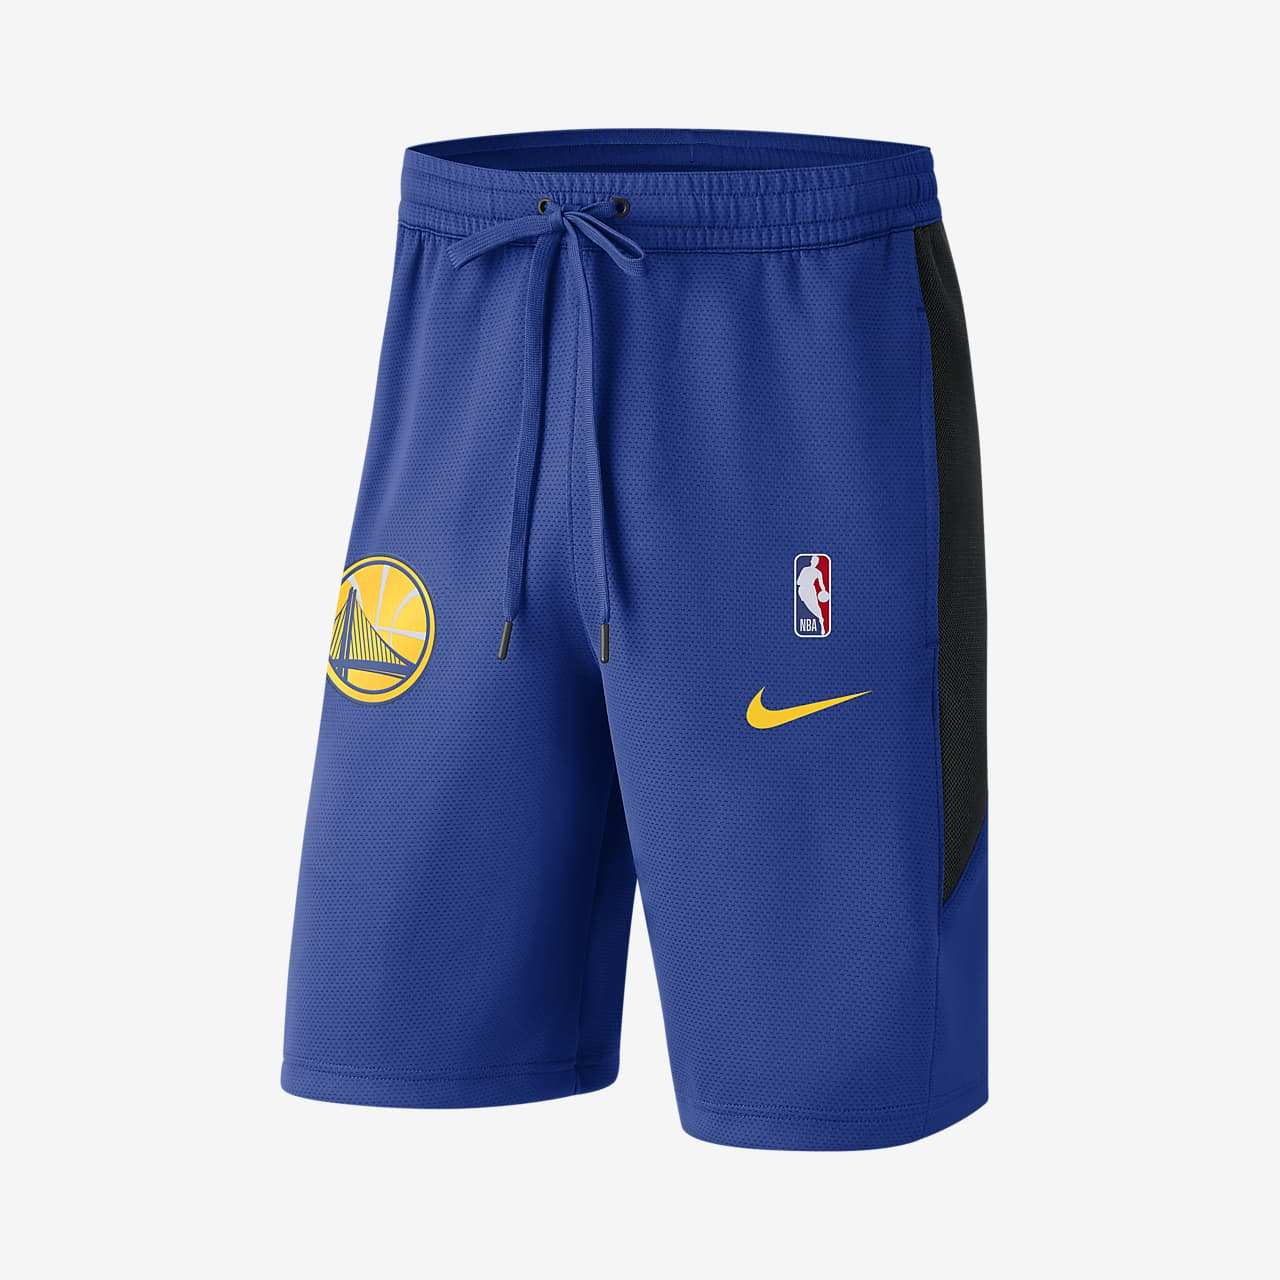 Golden State Warriors Nike Therma Flex